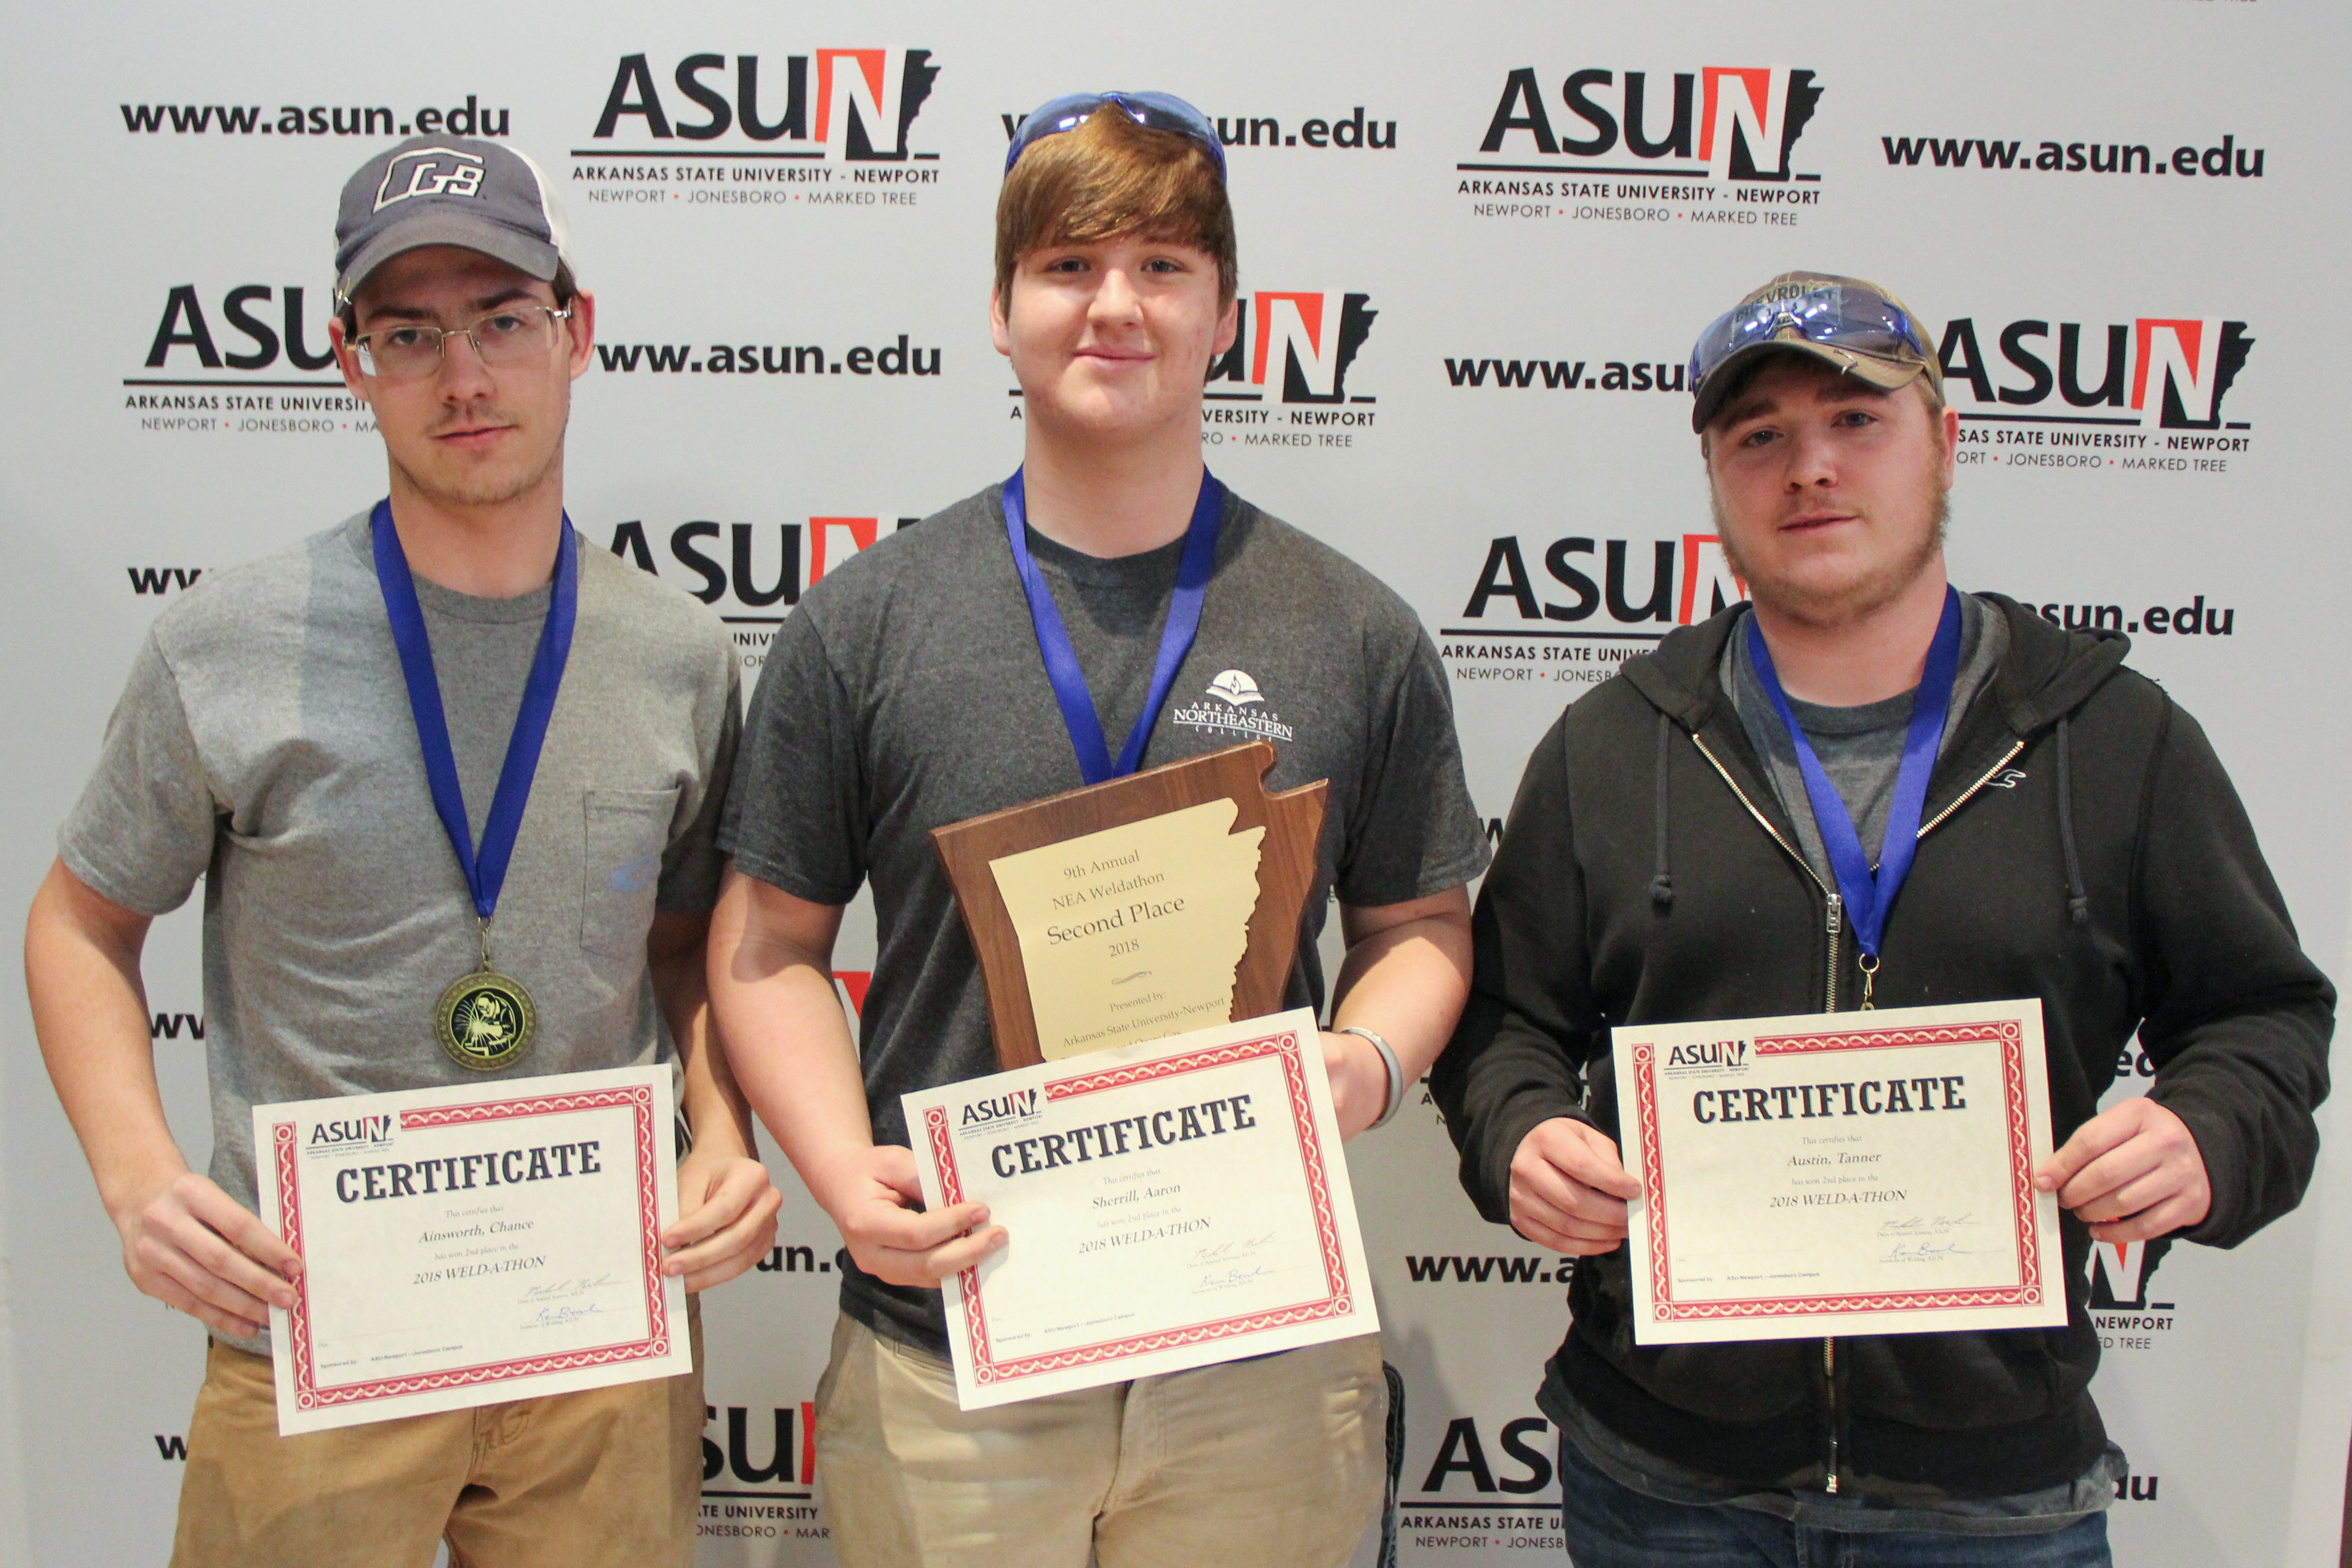 Image of Chance Ainsworth, Aaron Sherrill and Tanner Austin